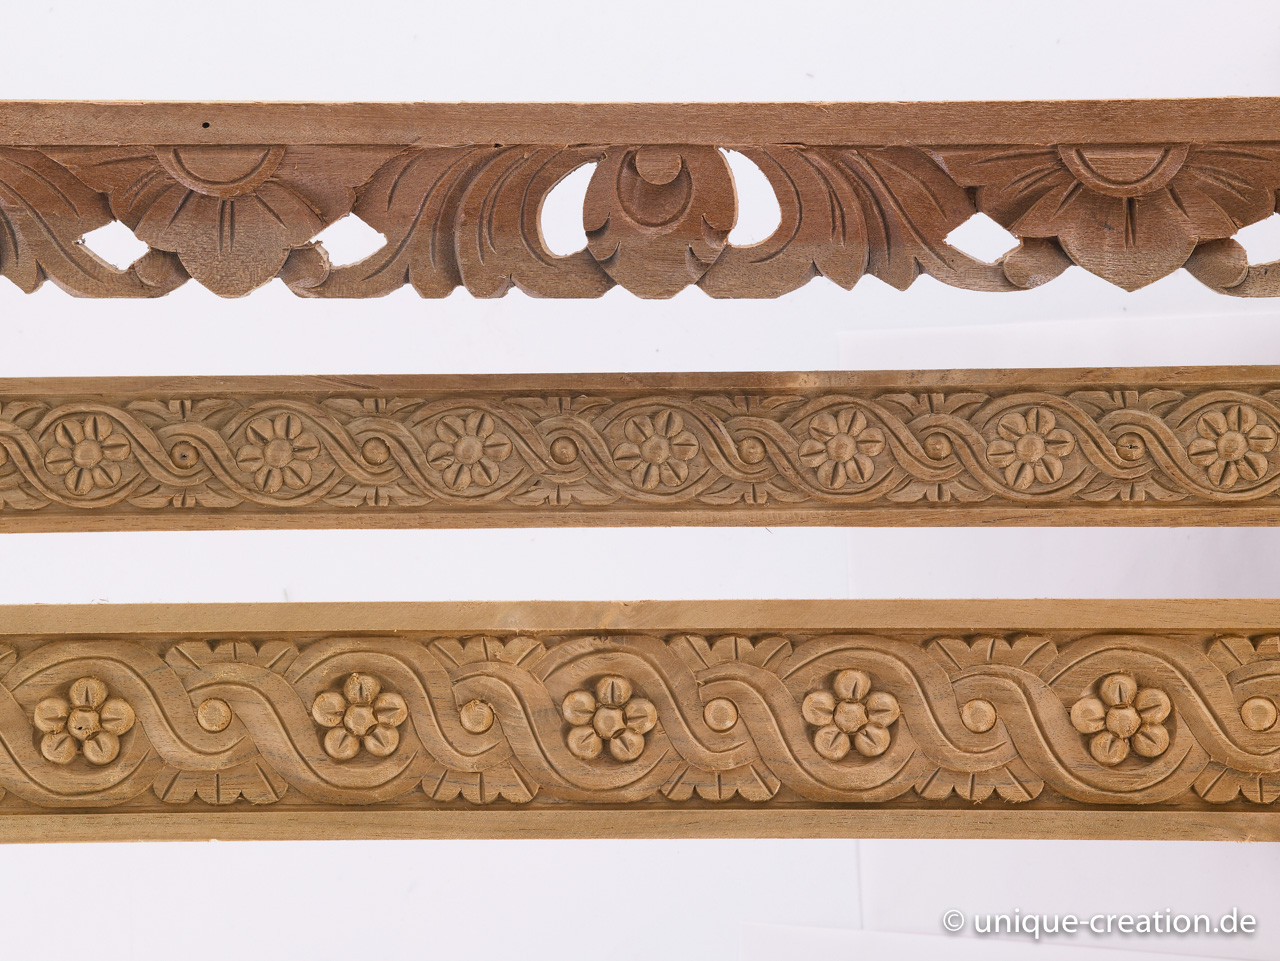 Handcarved wood strips made from teak and other hardwood